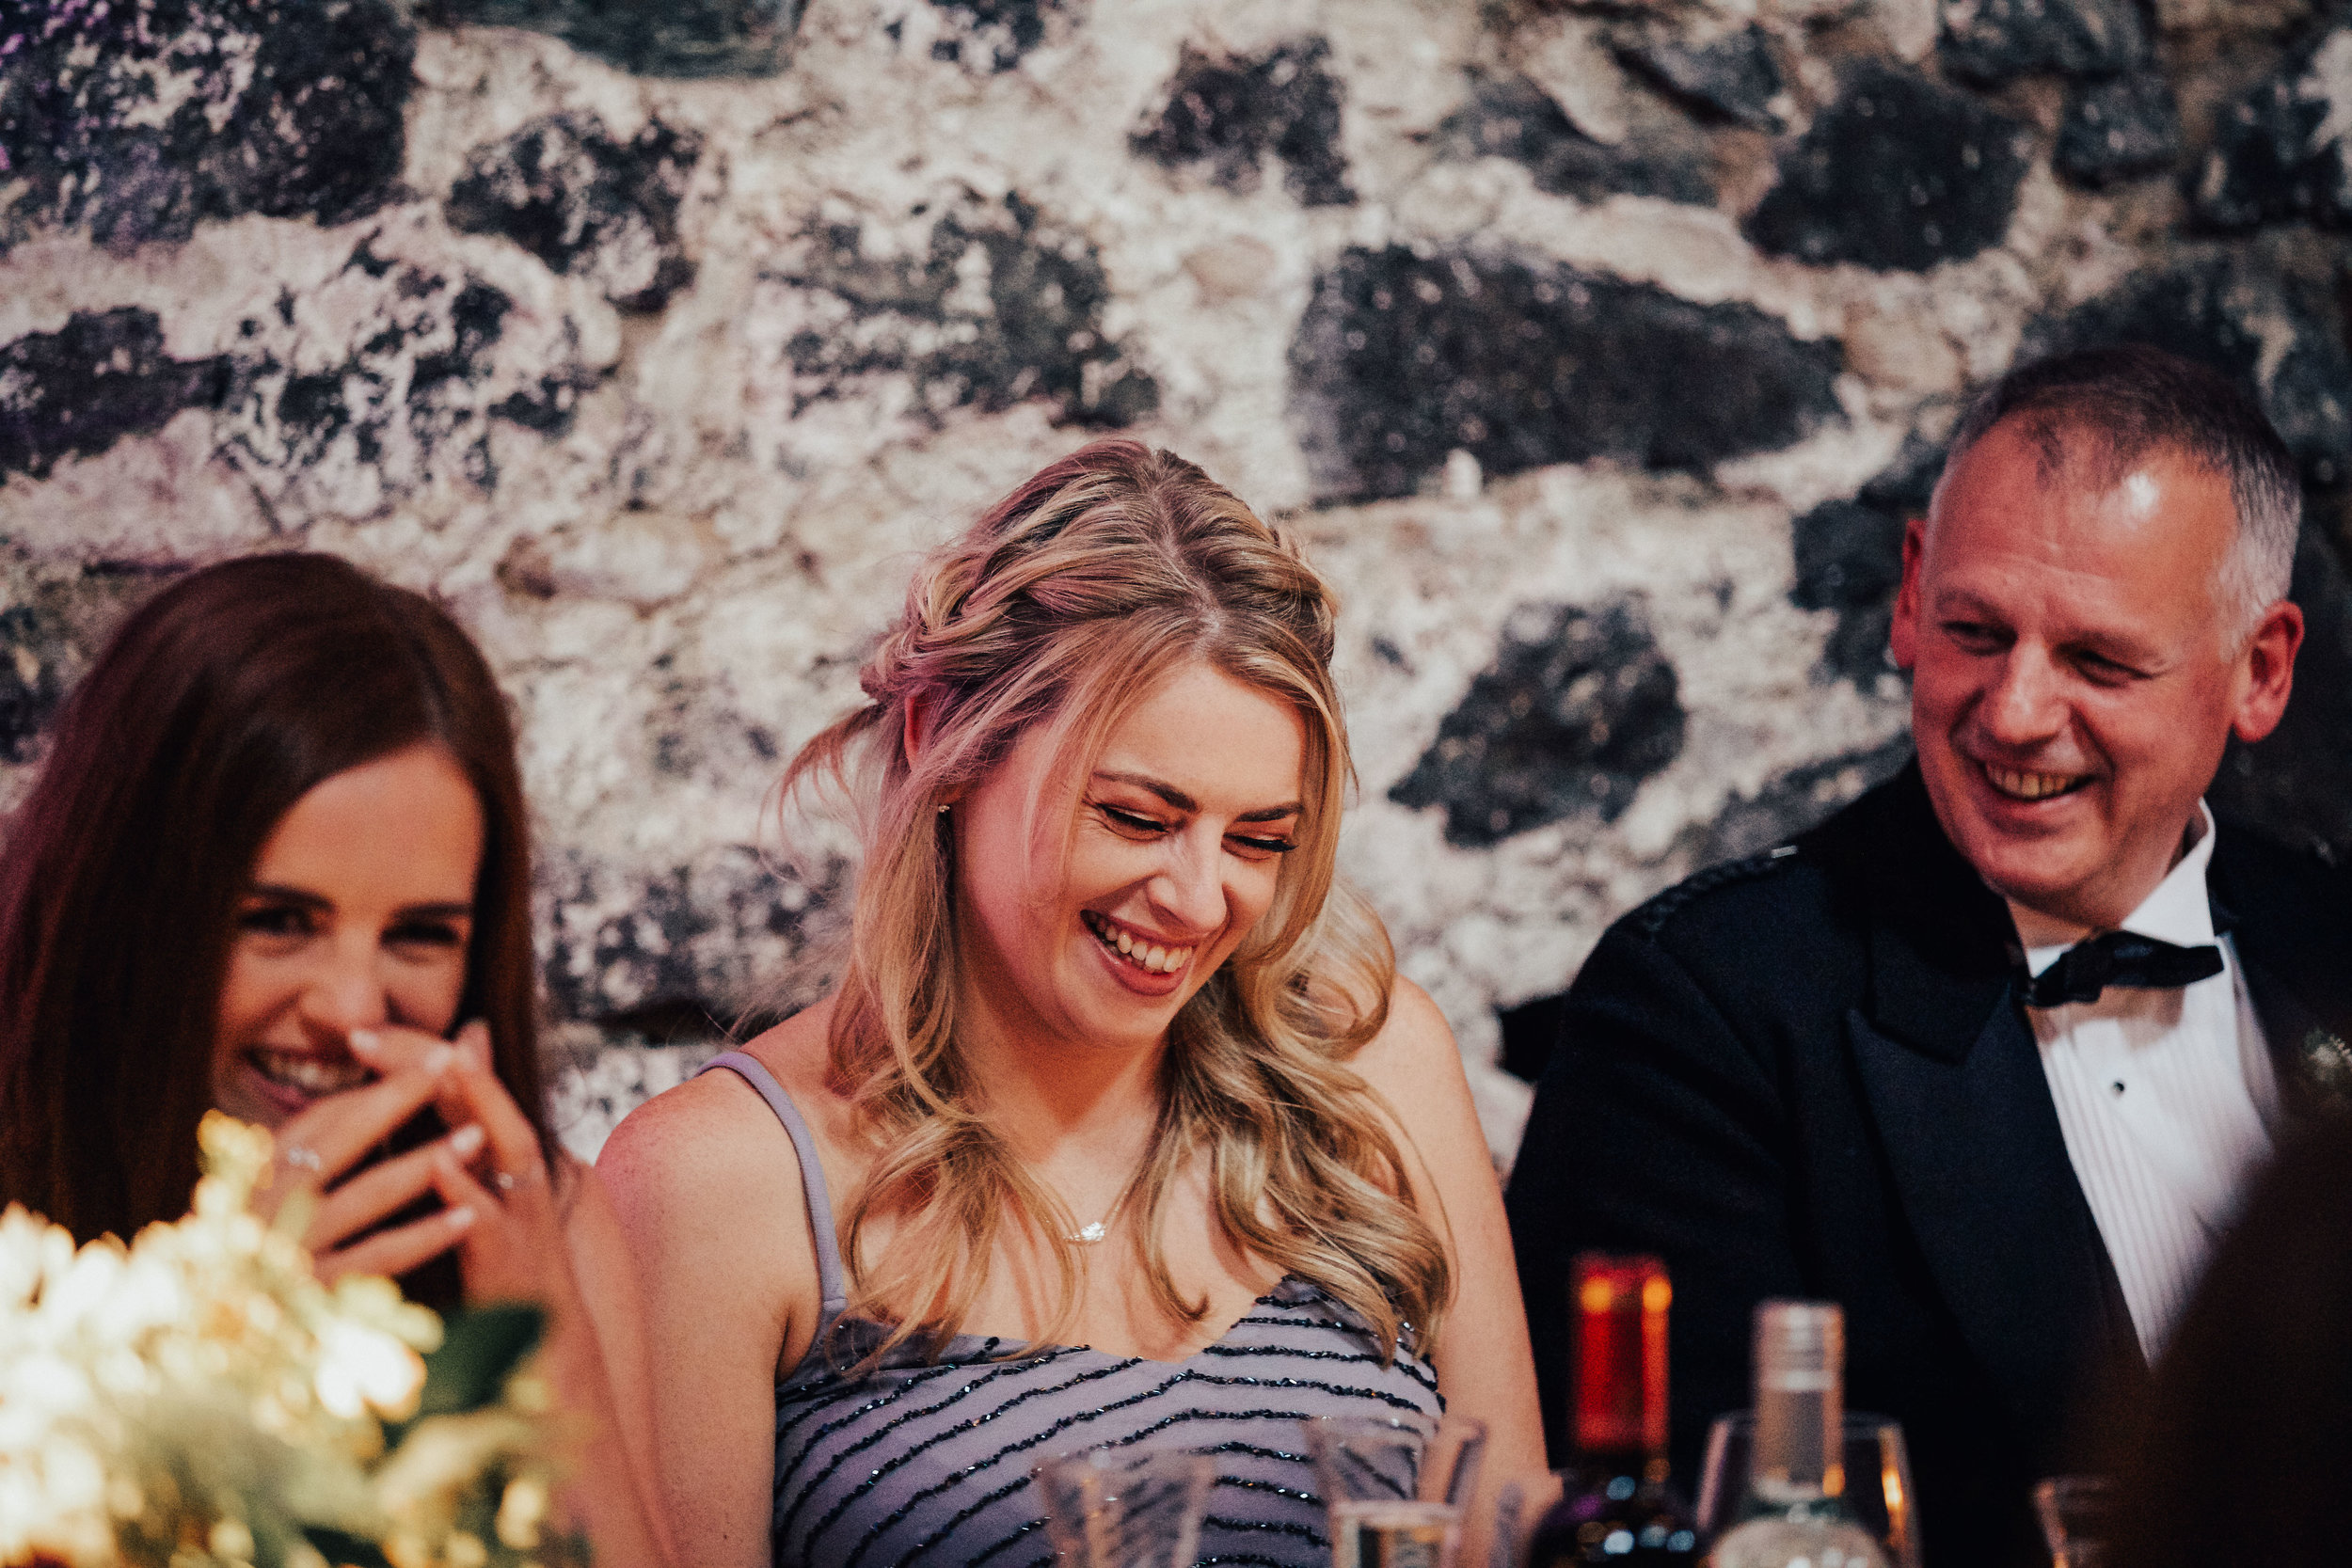 BYRE_AT_INCHYRA_WEDDING_PHOTOGRAPHER_PJ_PHILLIPS_PHOTOGRAPHY_KAYLEIGH_ANDREW_141.jpg